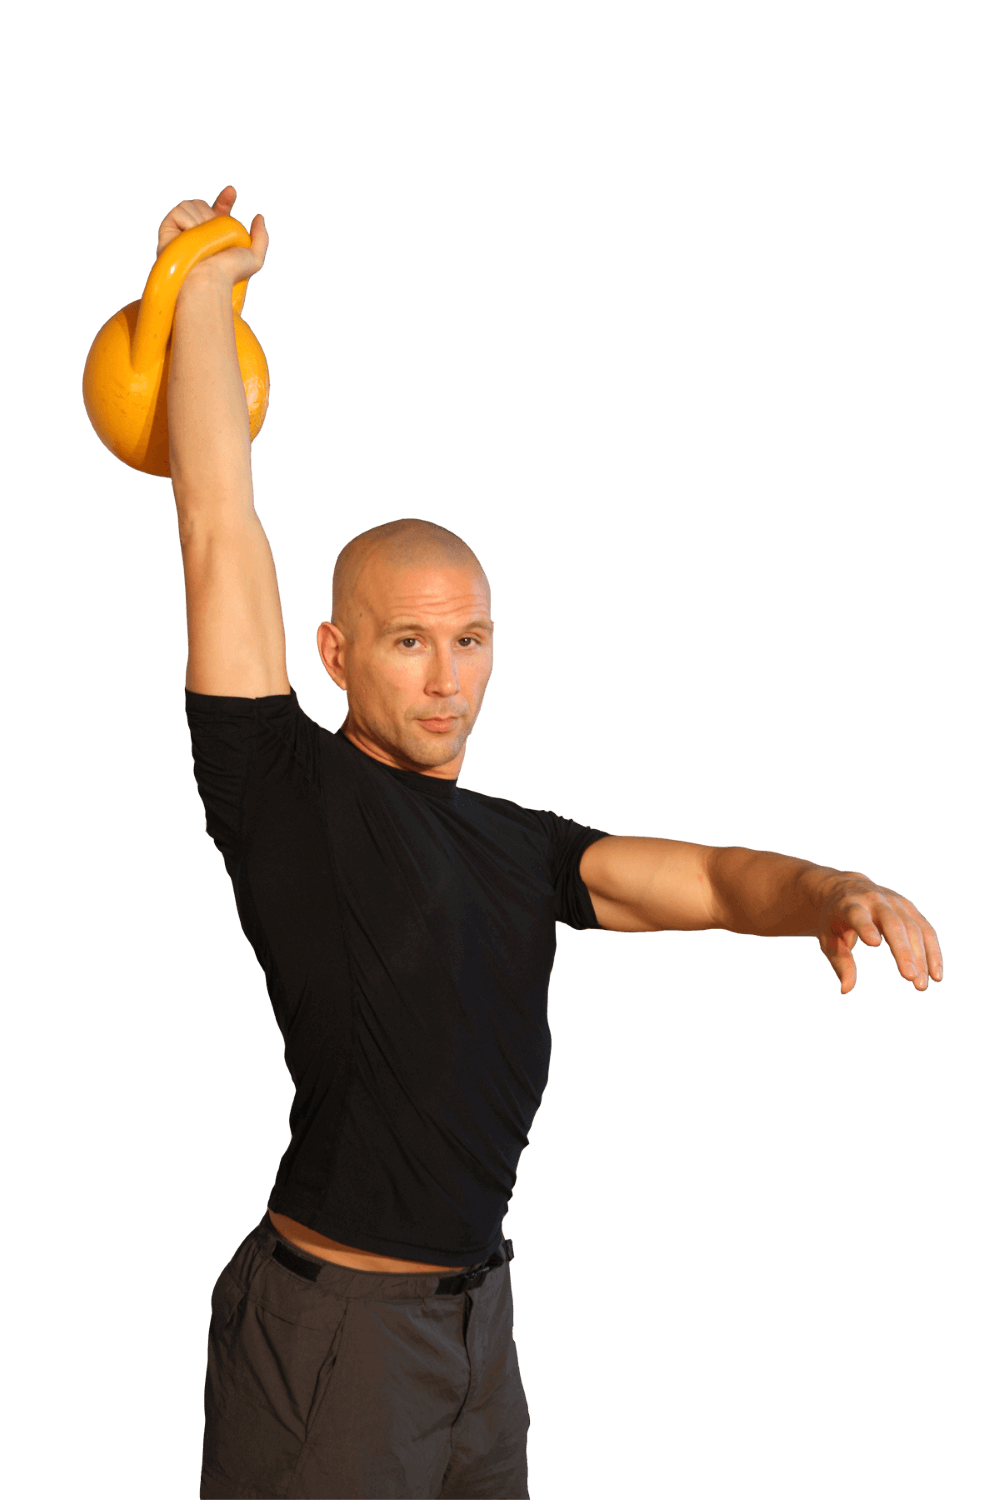 tacfit commando lifting a kettle ball